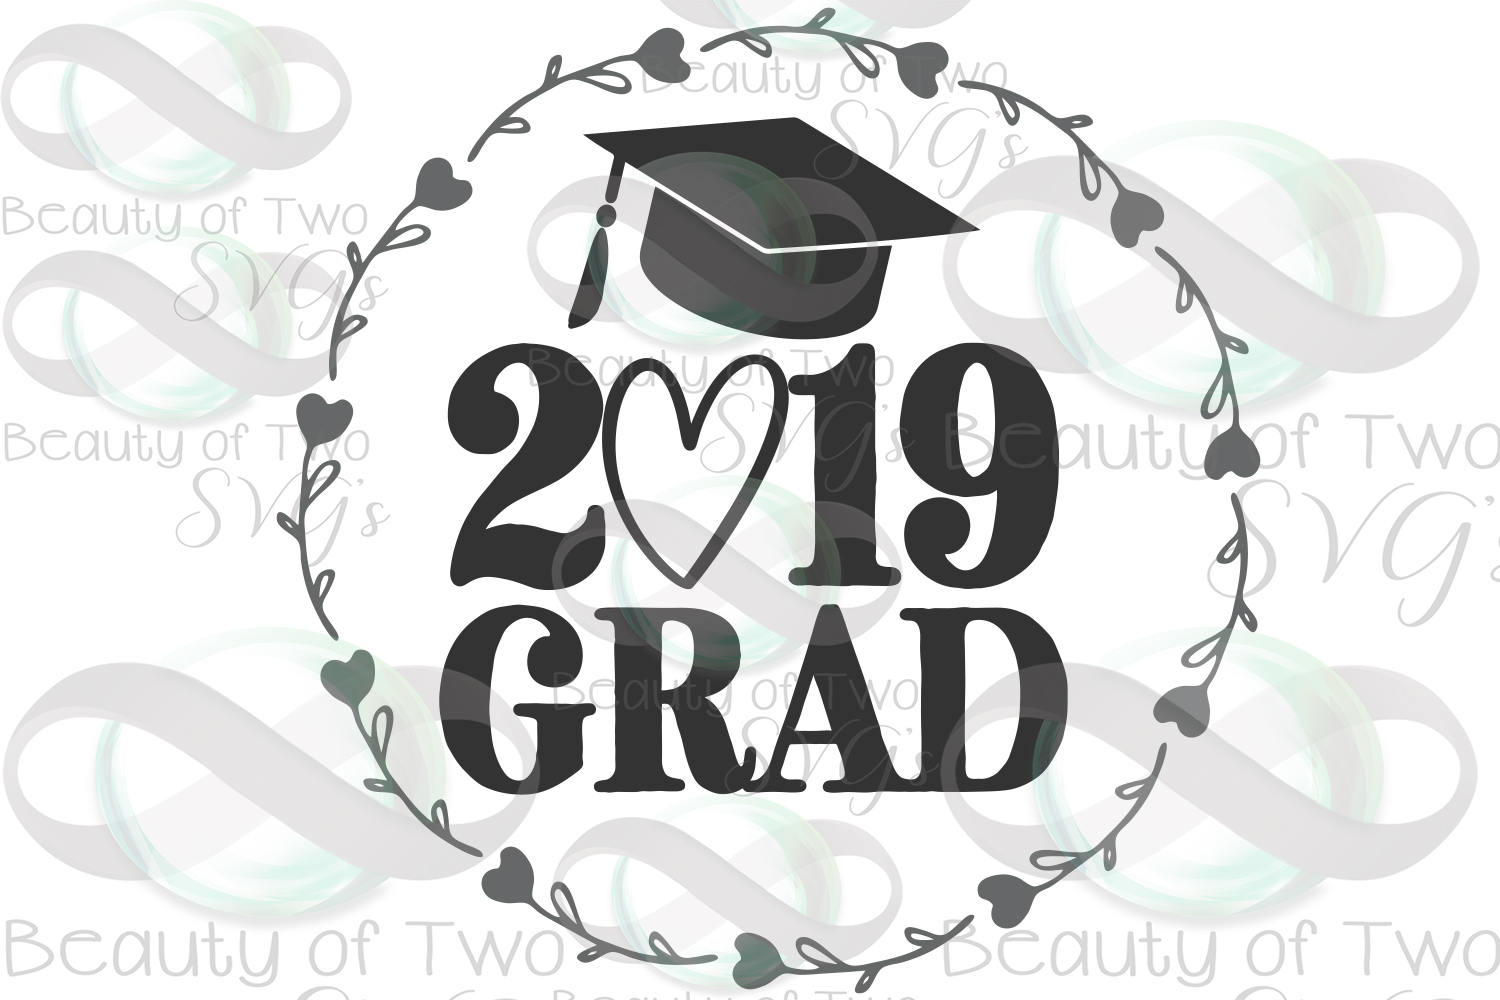 2019 Grad svg and png, 2019 Graduate svg, Graduate 2019 svg example image 3